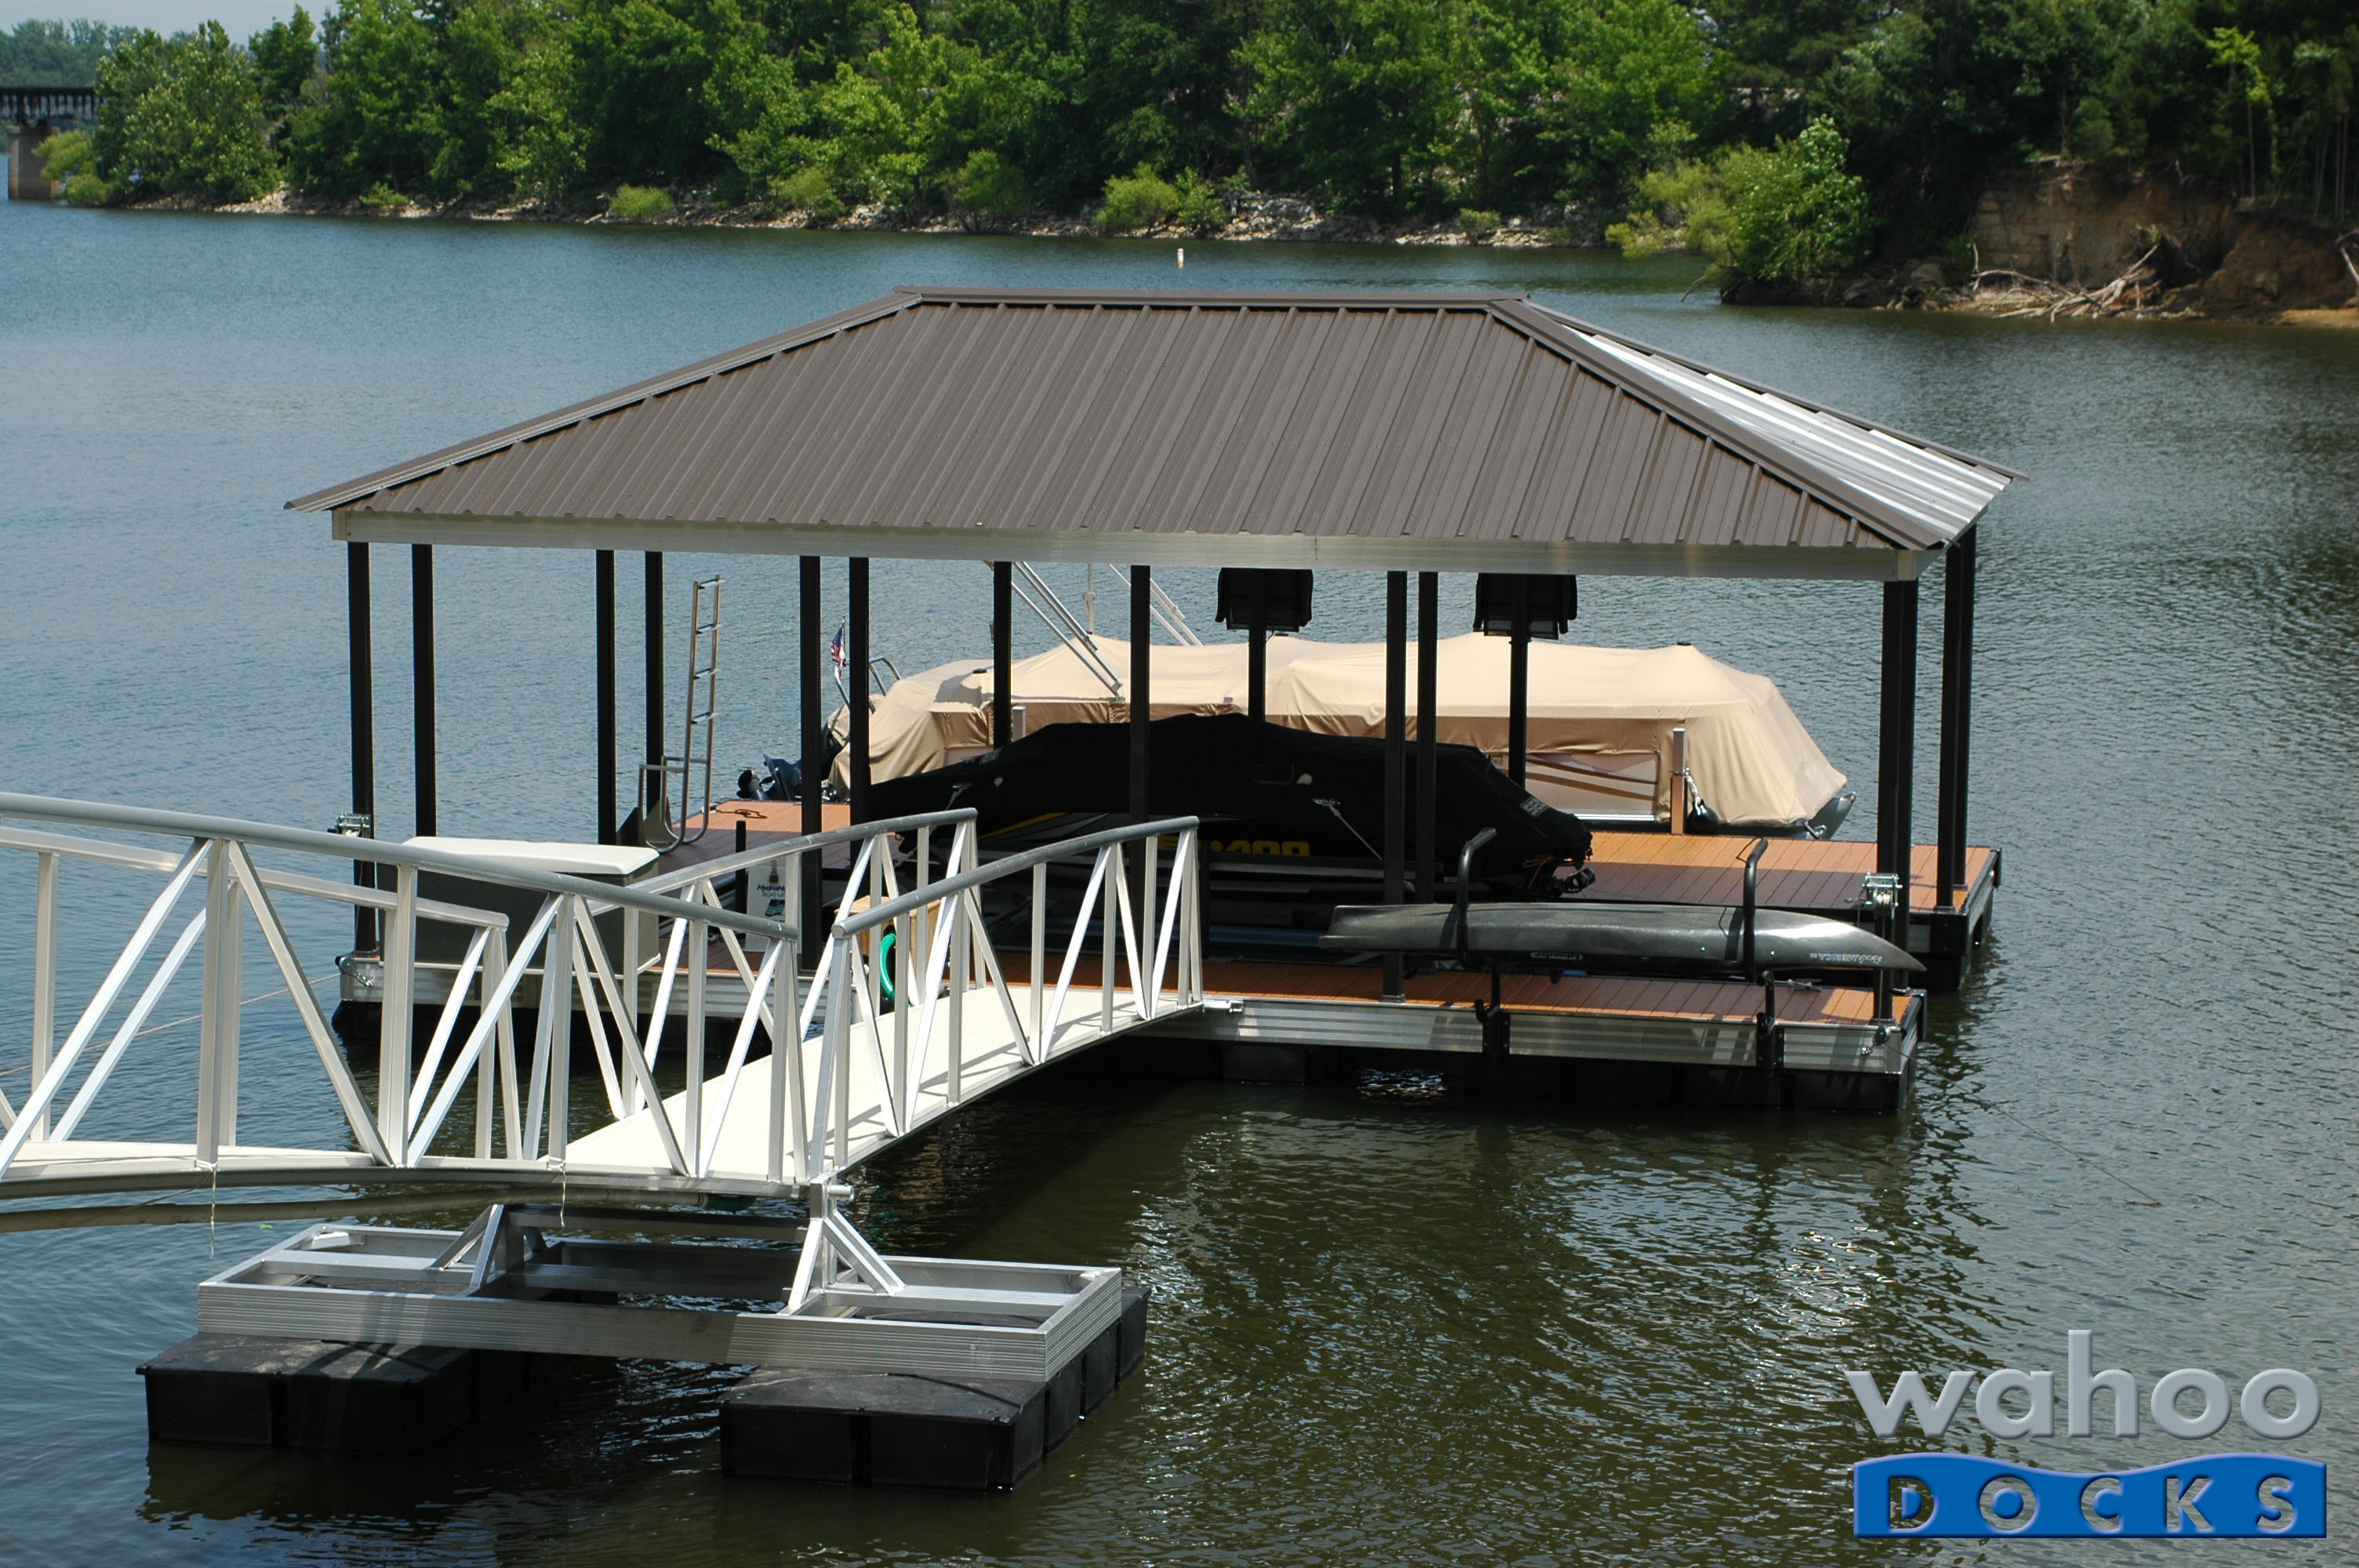 Wahoo-Dock-Garland-June-2013-3